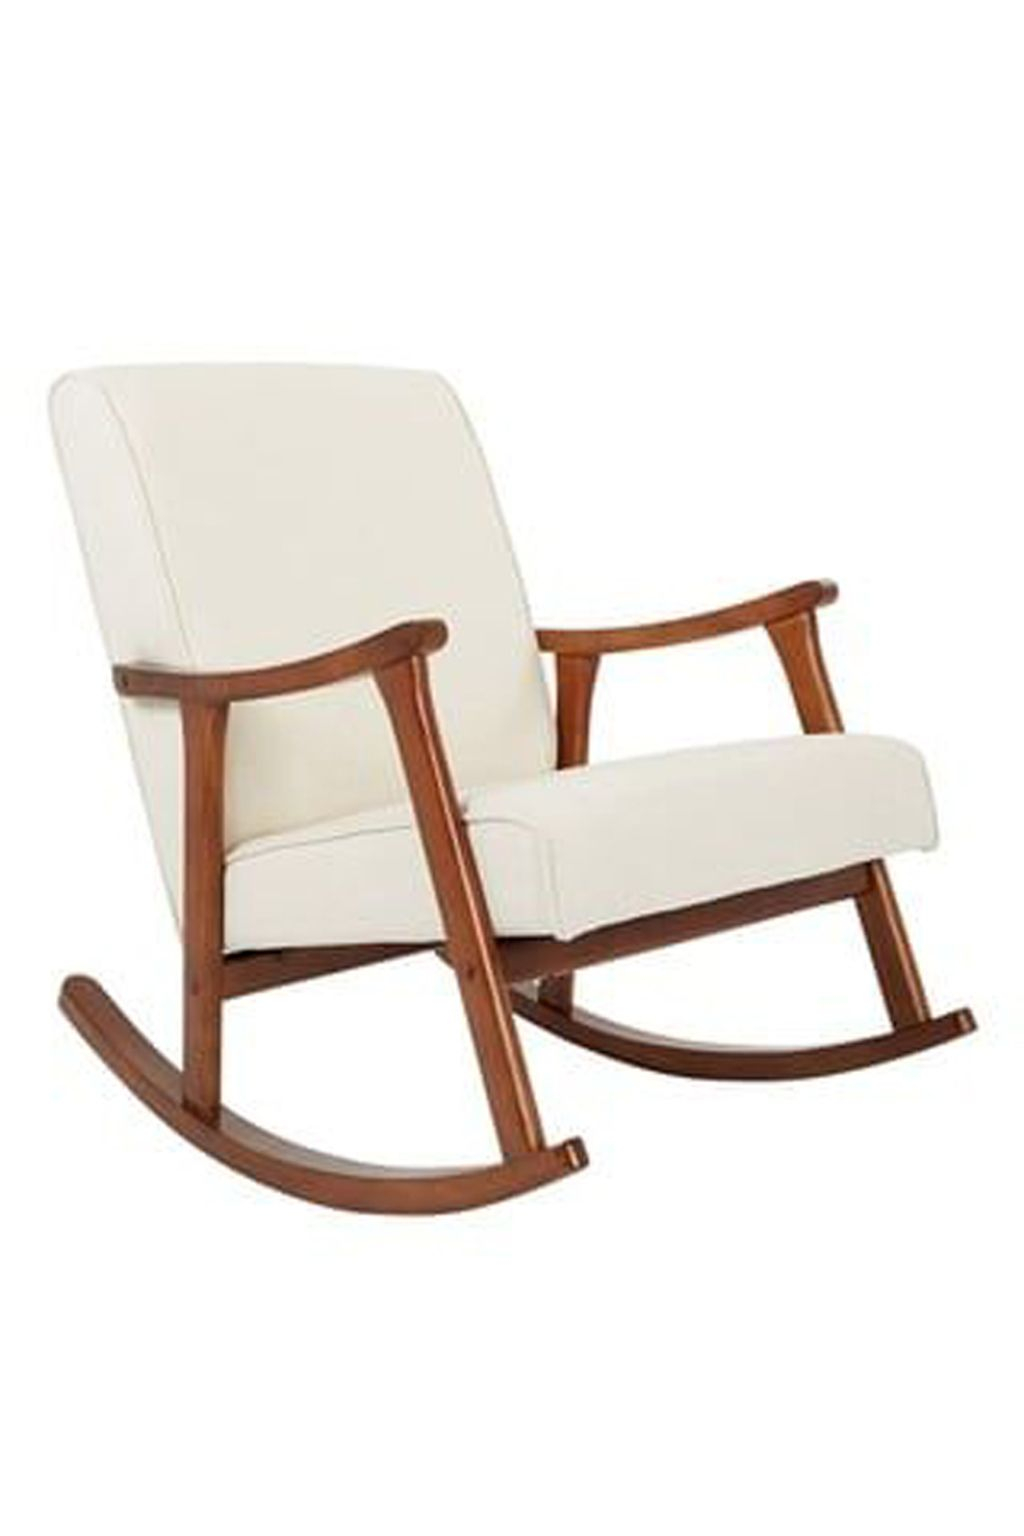 Superb Rocking Chairs Design Ideas For Your Relaxing 16